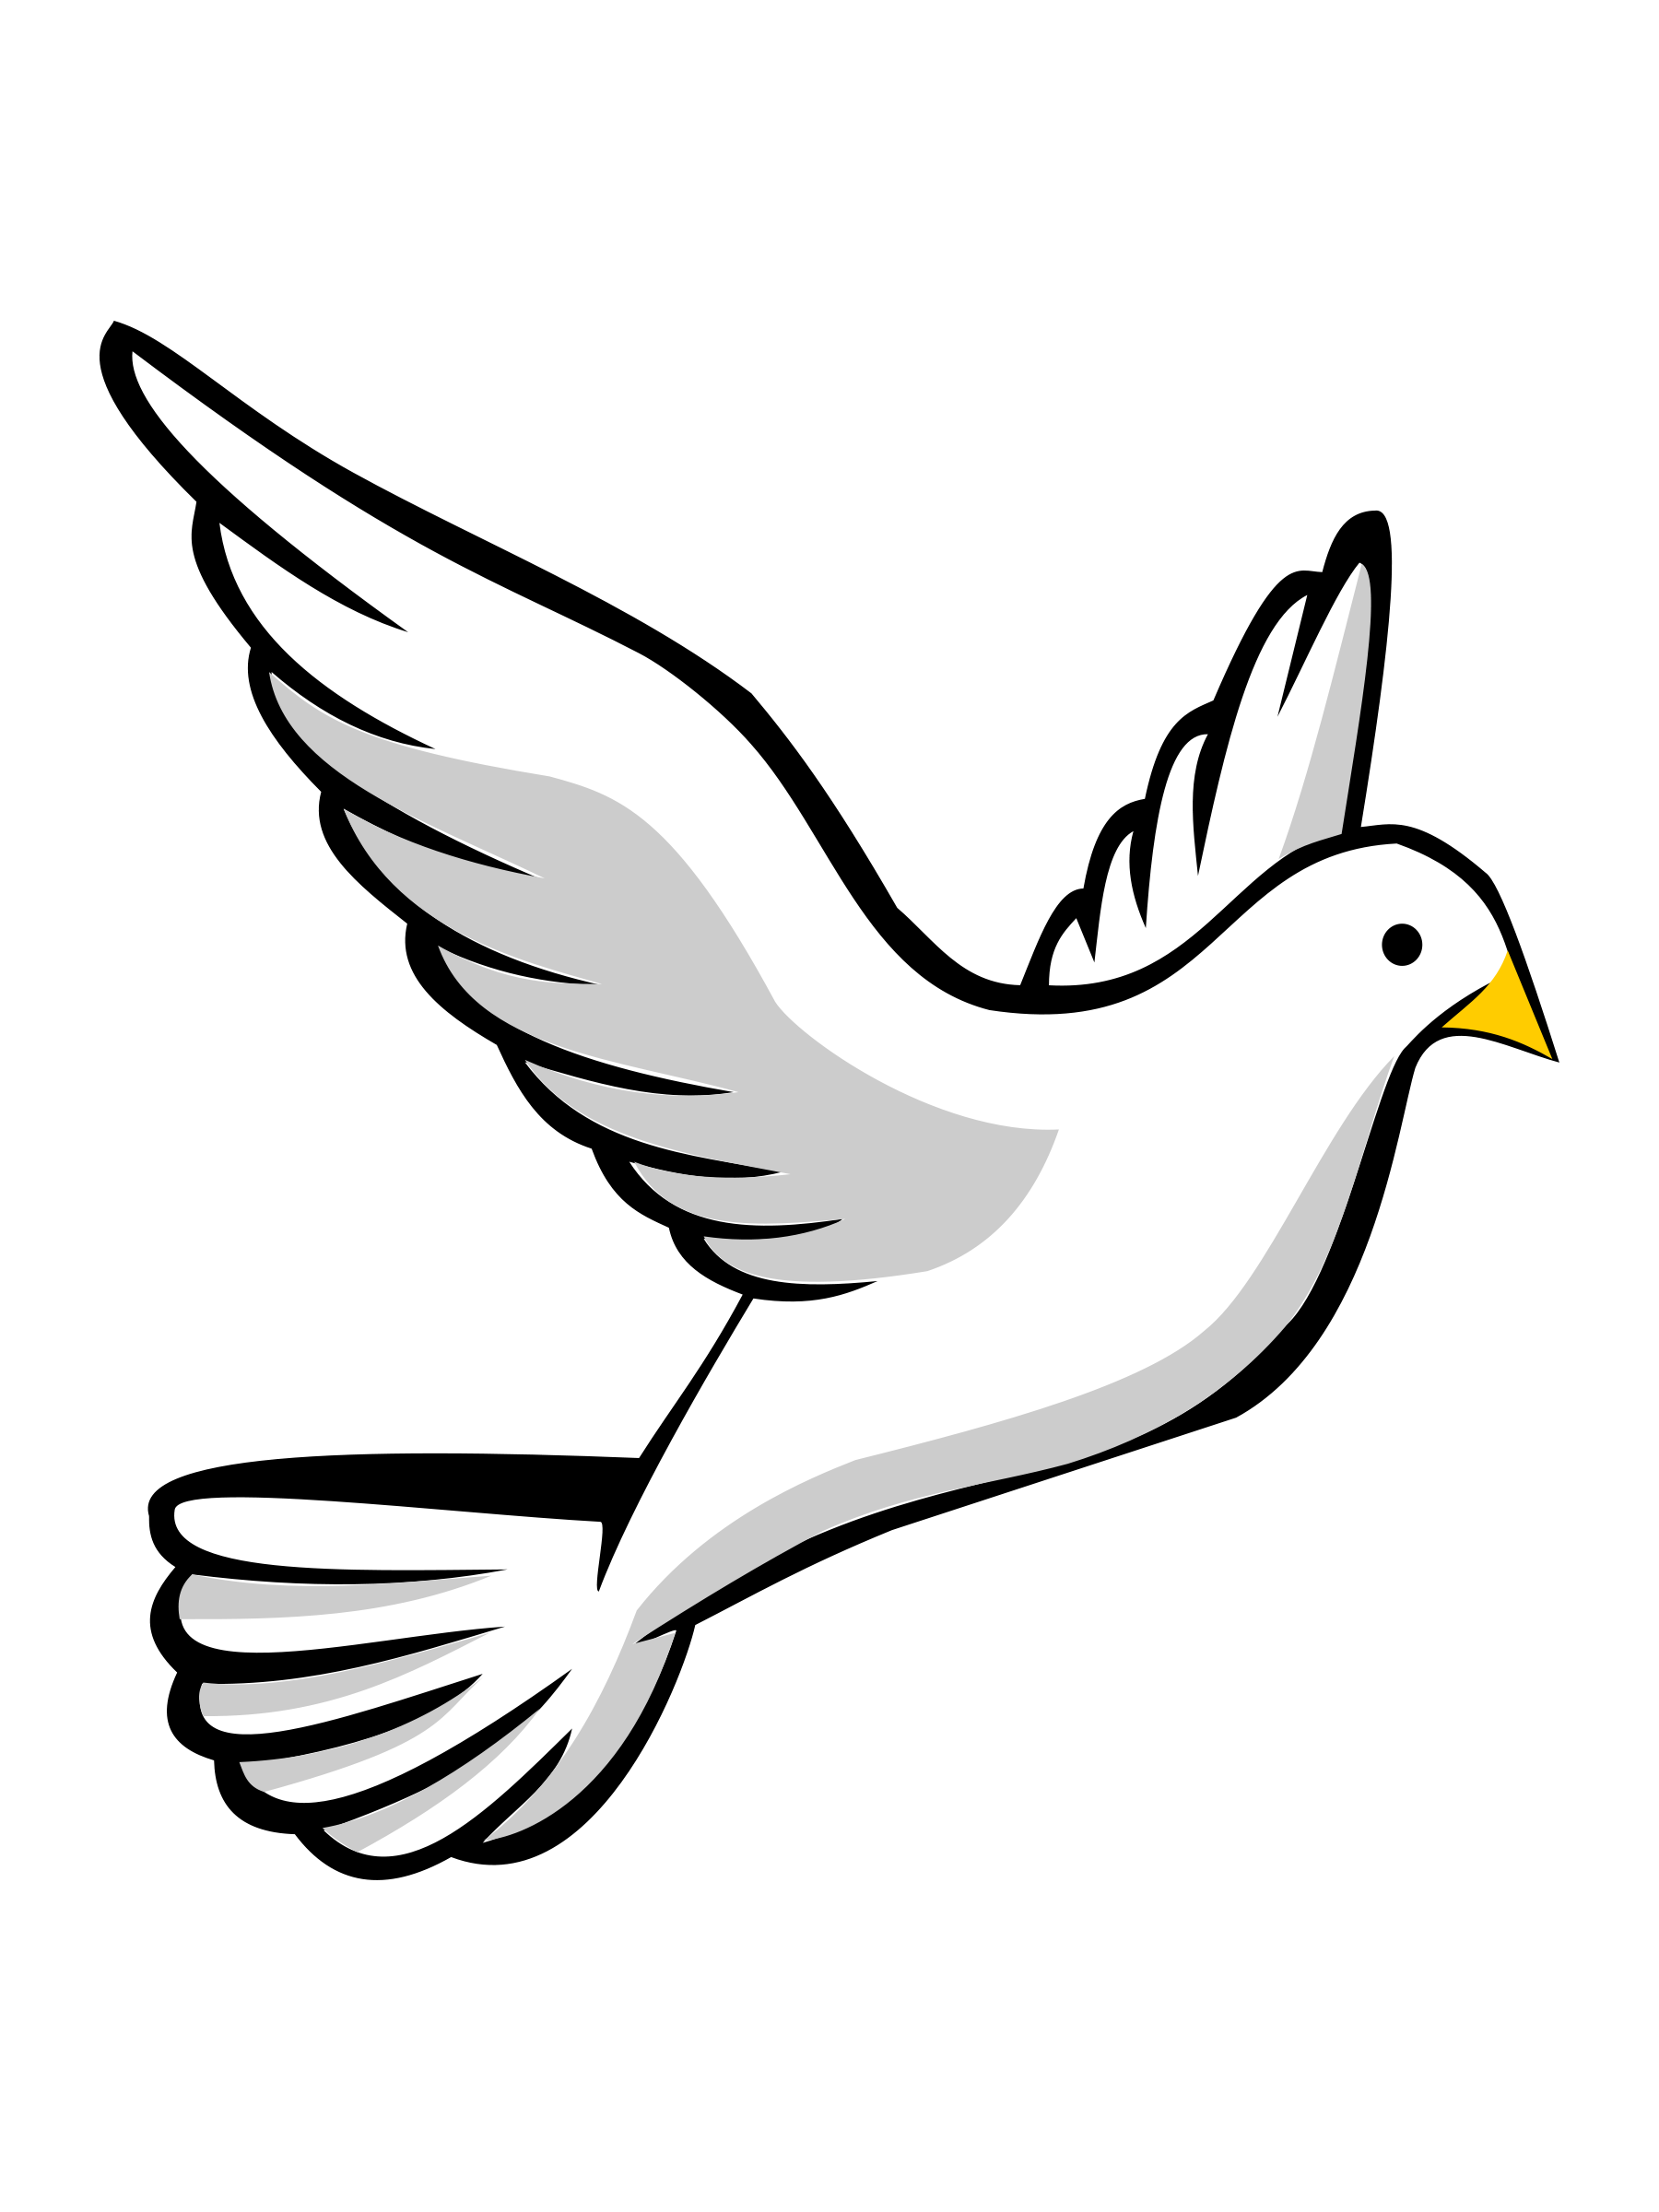 Dove Drawing | Free download best Dove Drawing on ClipArtMag.com